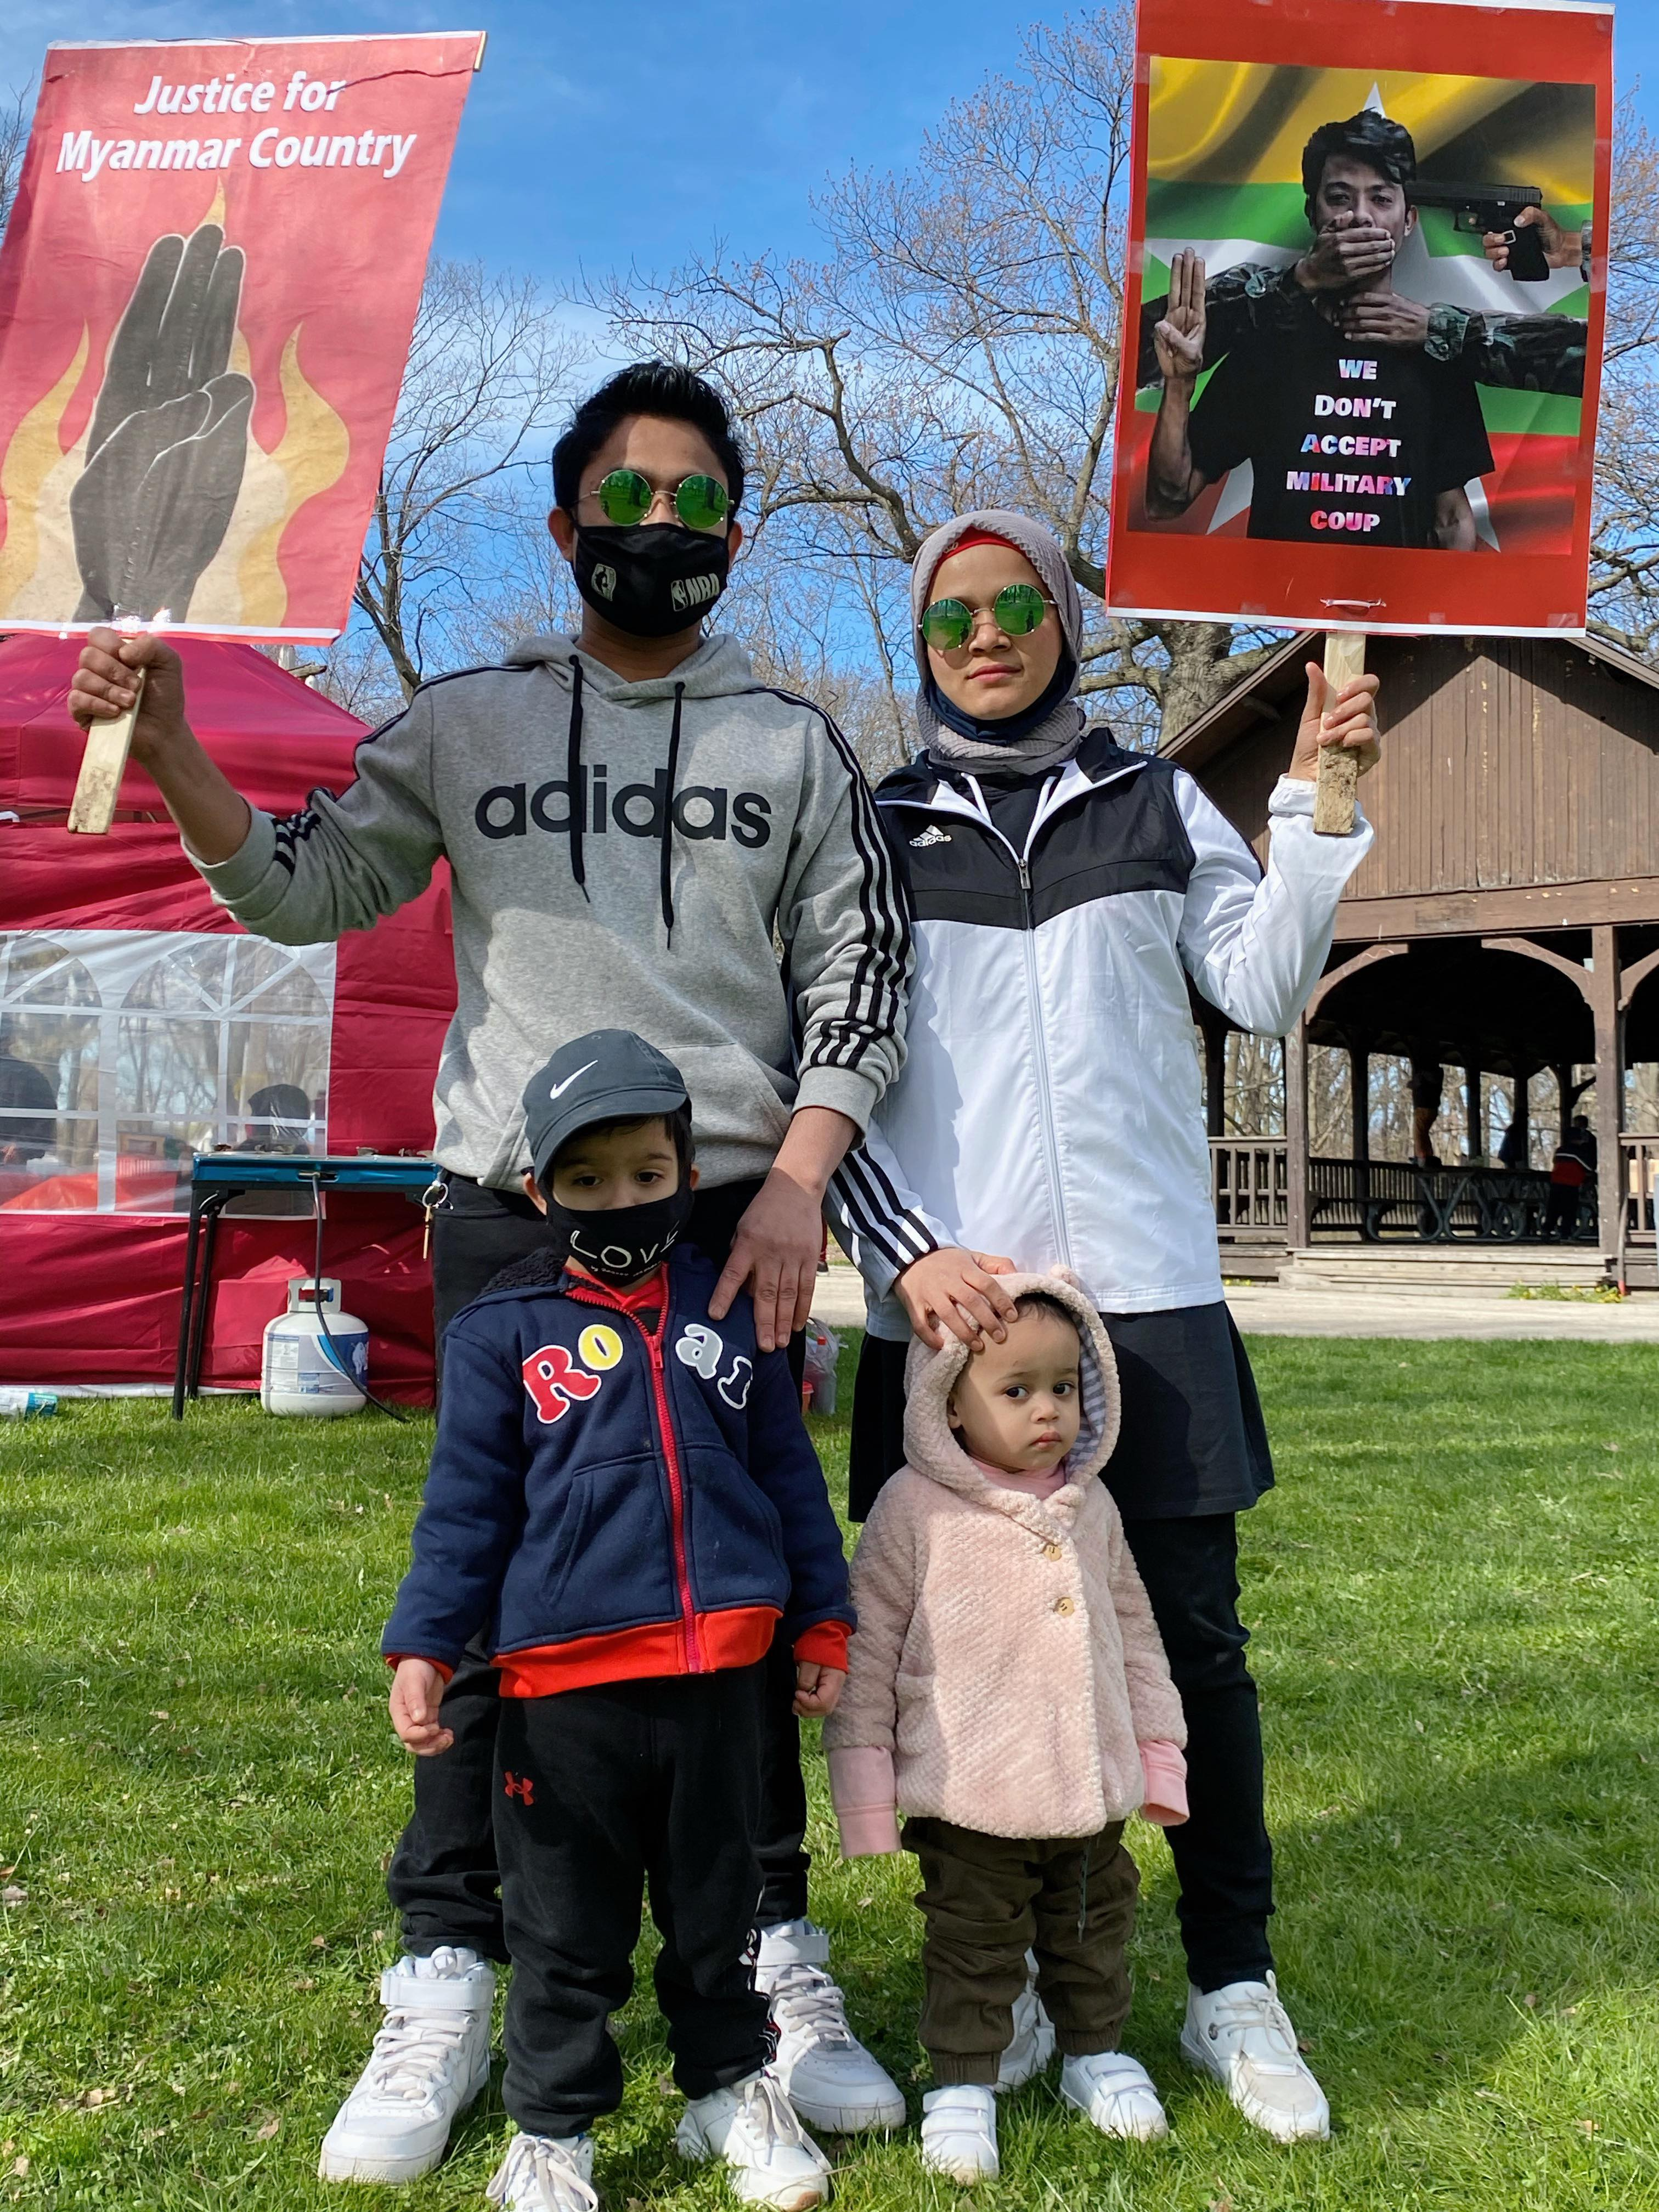 A Rohingya family of four holds signs demanding justice for Myanmar. They are dressed for Chicago spring weather.